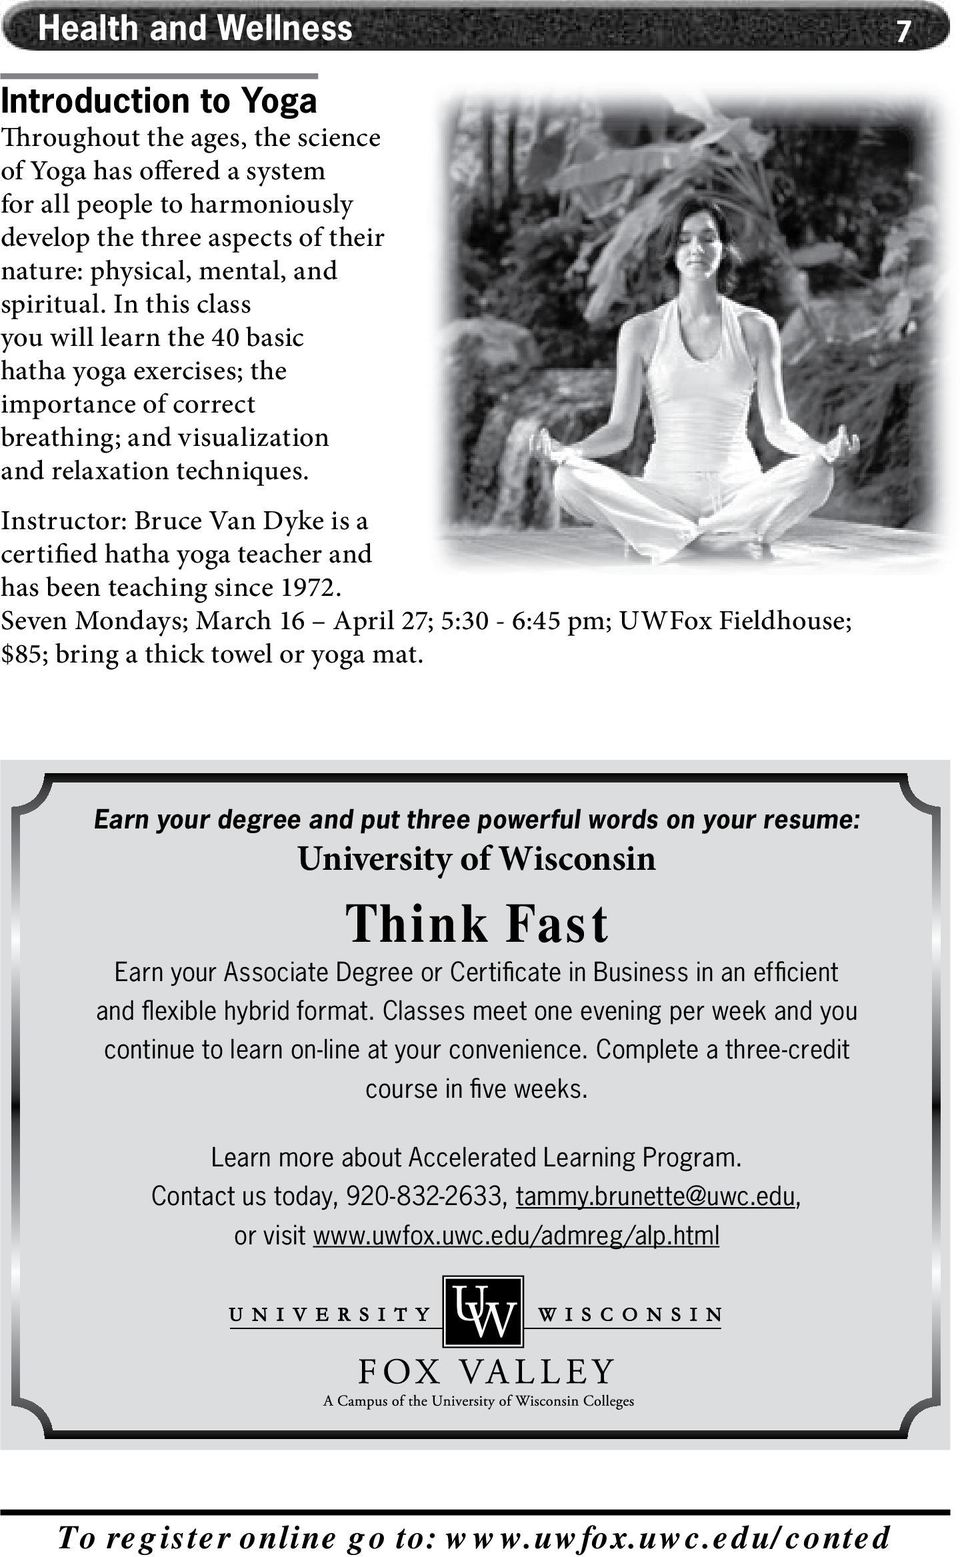 Instructor: Bruce Van Dyke is a certified hatha yoga teacher and has been teaching since 1972. Seven Mondays; March 16 April 27; 5:30-6:45 pm; UWFox Fieldhouse; $85; bring a thick towel or yoga mat.